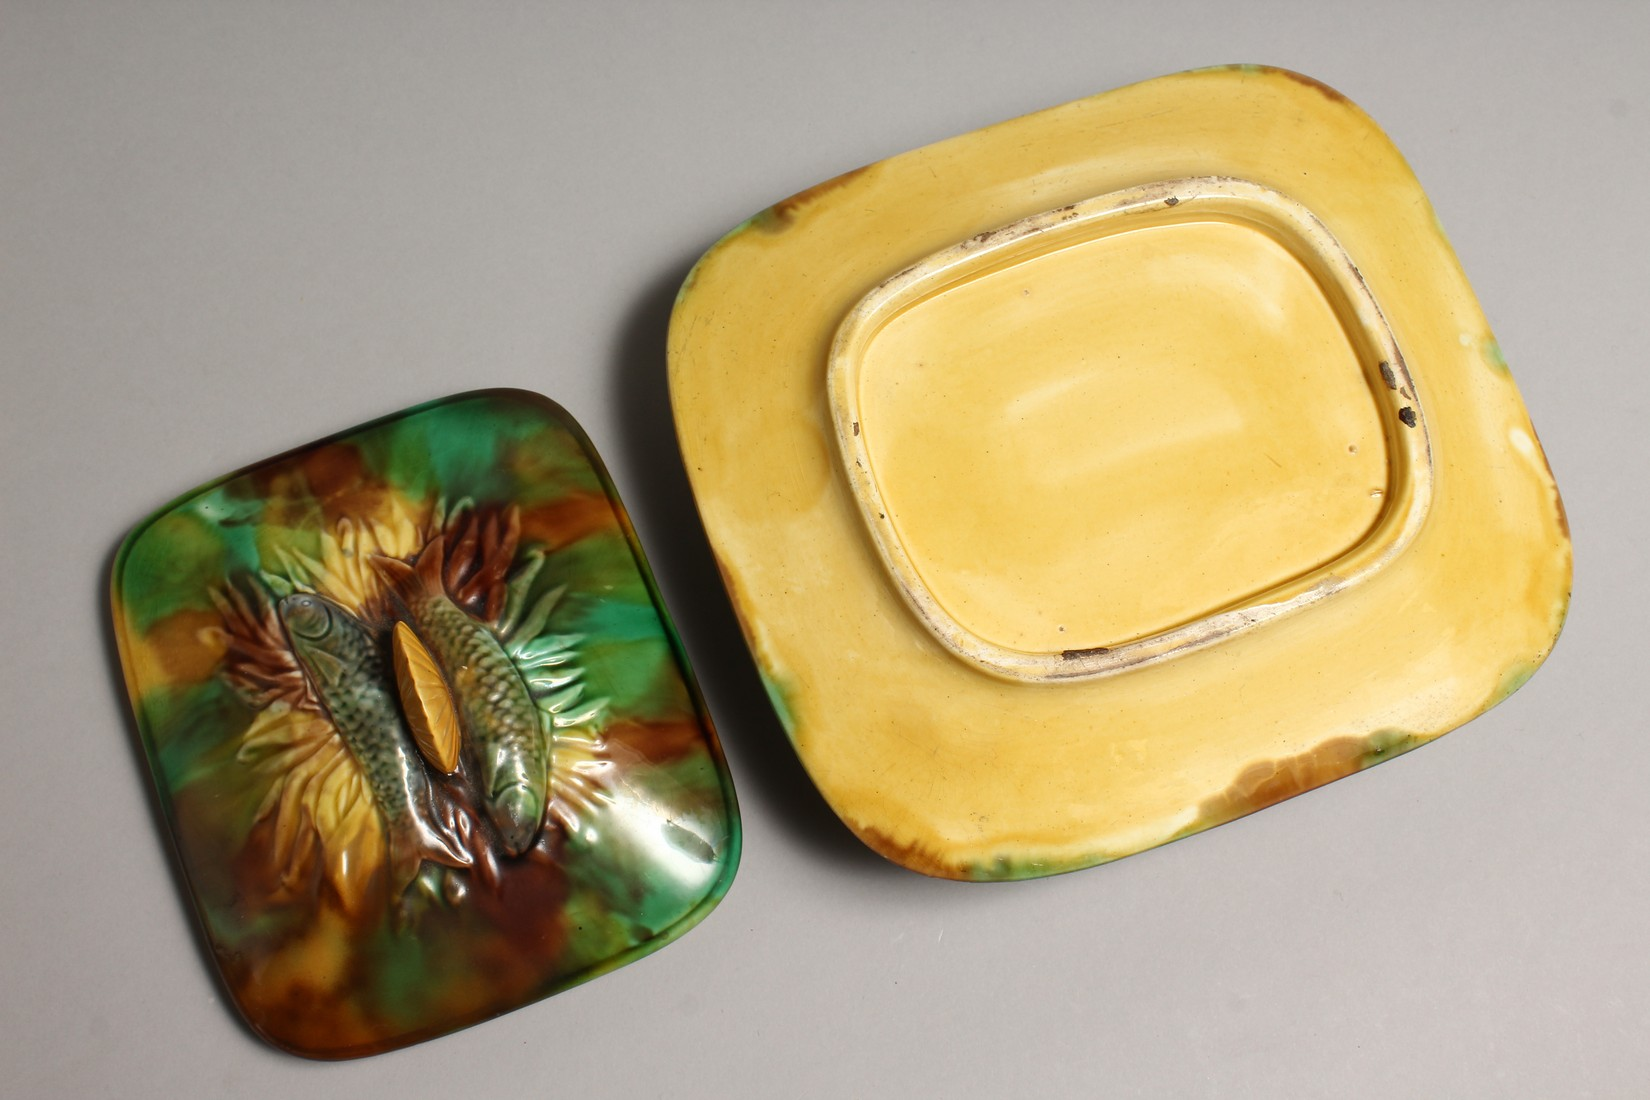 A MAJOLICA SARDINE DISH AND COVER, green and brown glaze with moulded decoration and shell handle. - Image 4 of 4